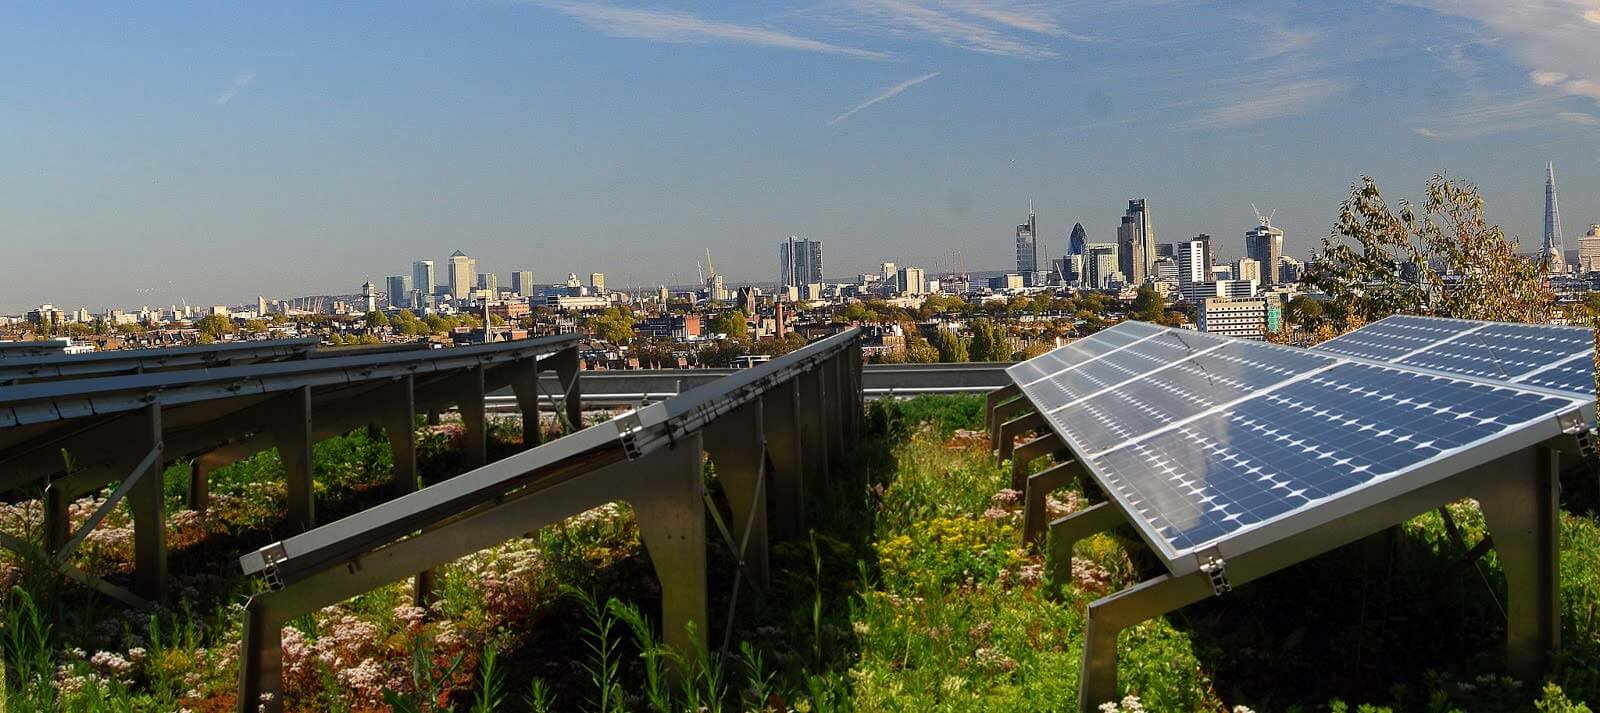 What is a biosolar roof and can how it change city living?